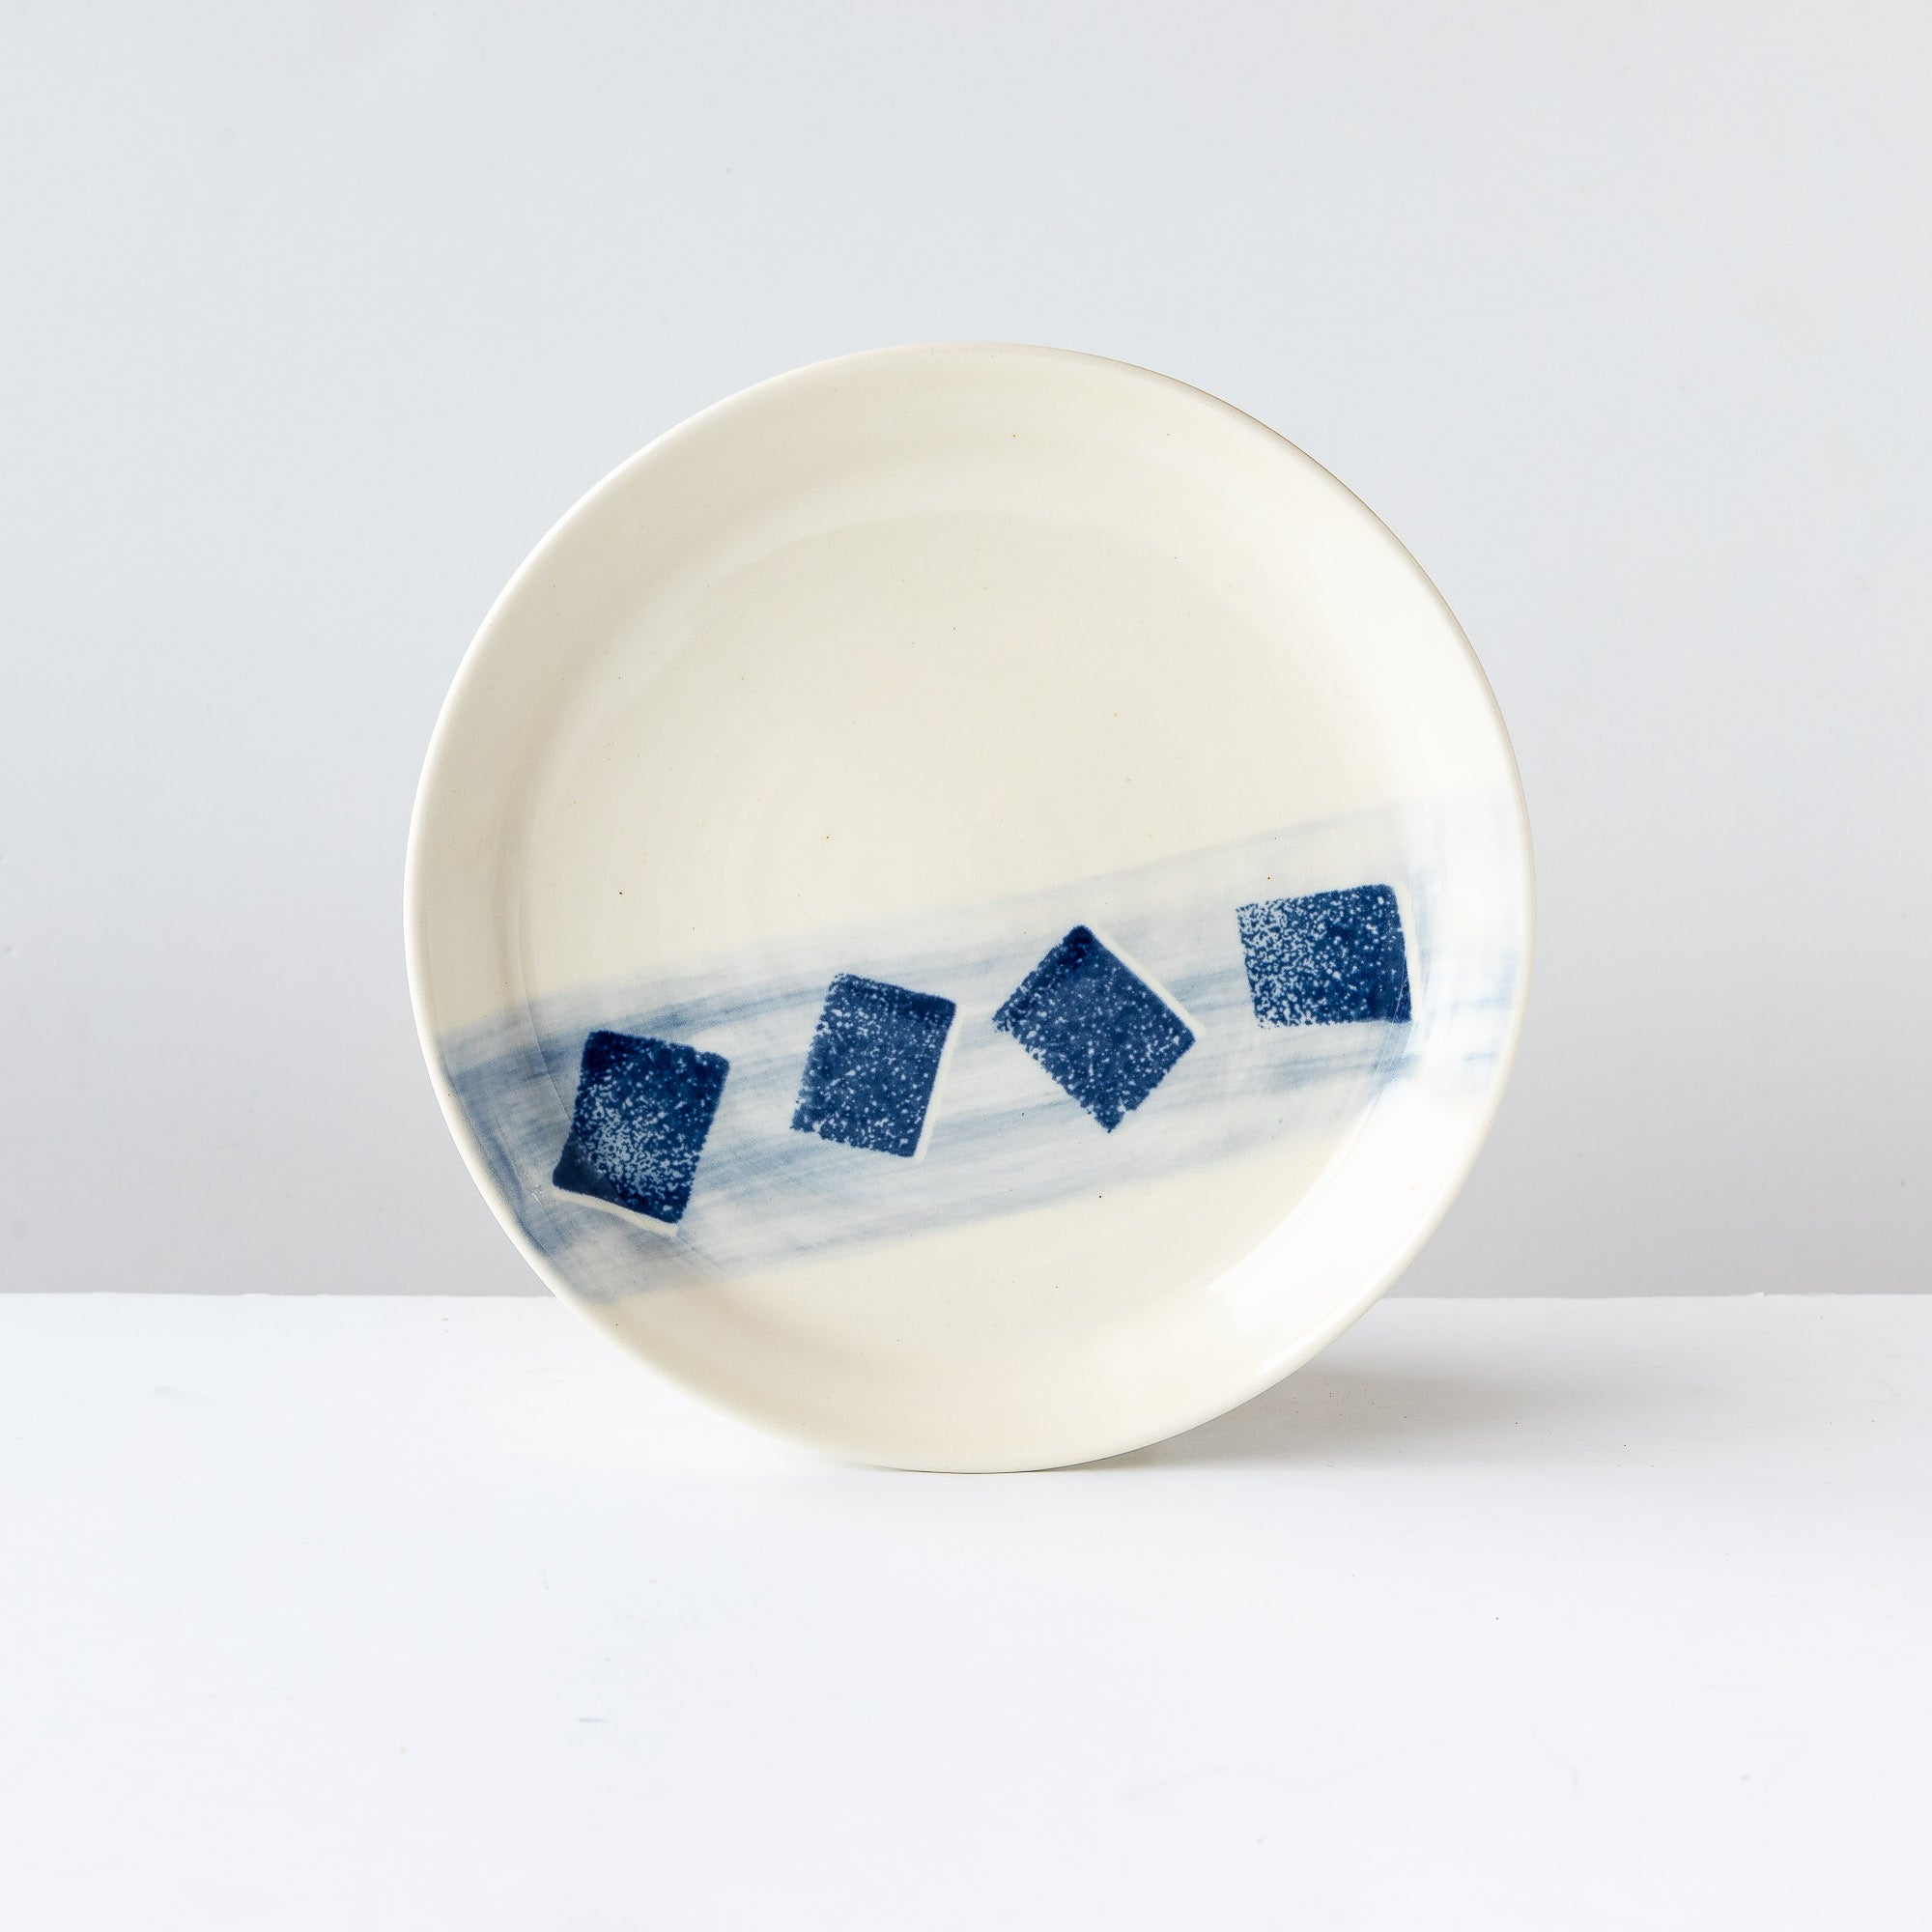 Large Hand Thrown White & Blue Porcelain Plate - Sold by Chic & Basta